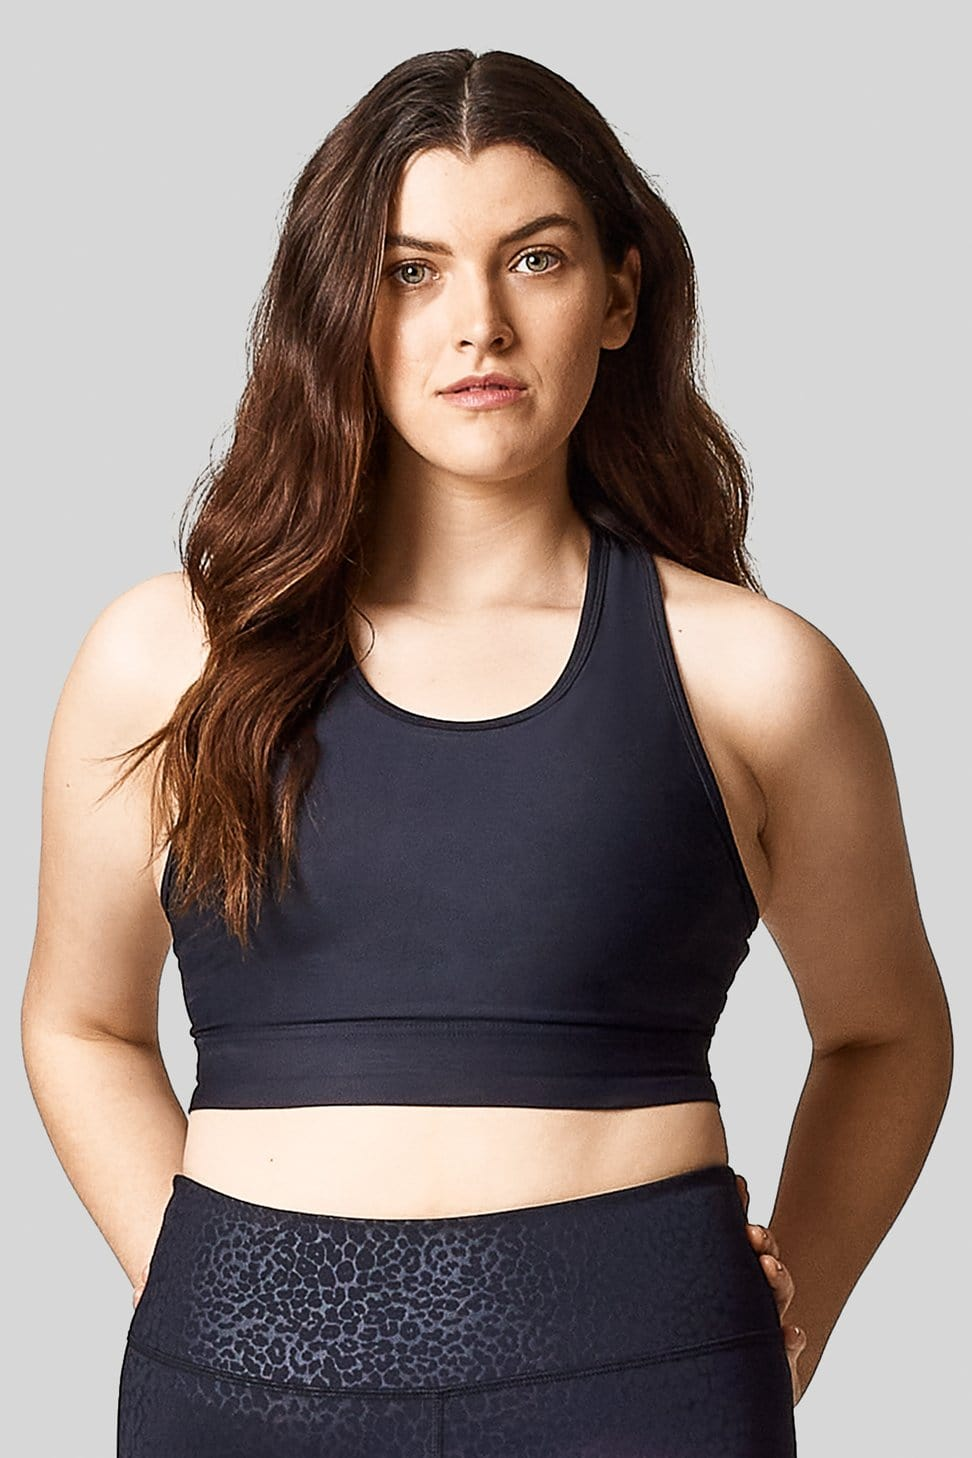 A woman wears a black long line sports bra with cheetah printed leggings.